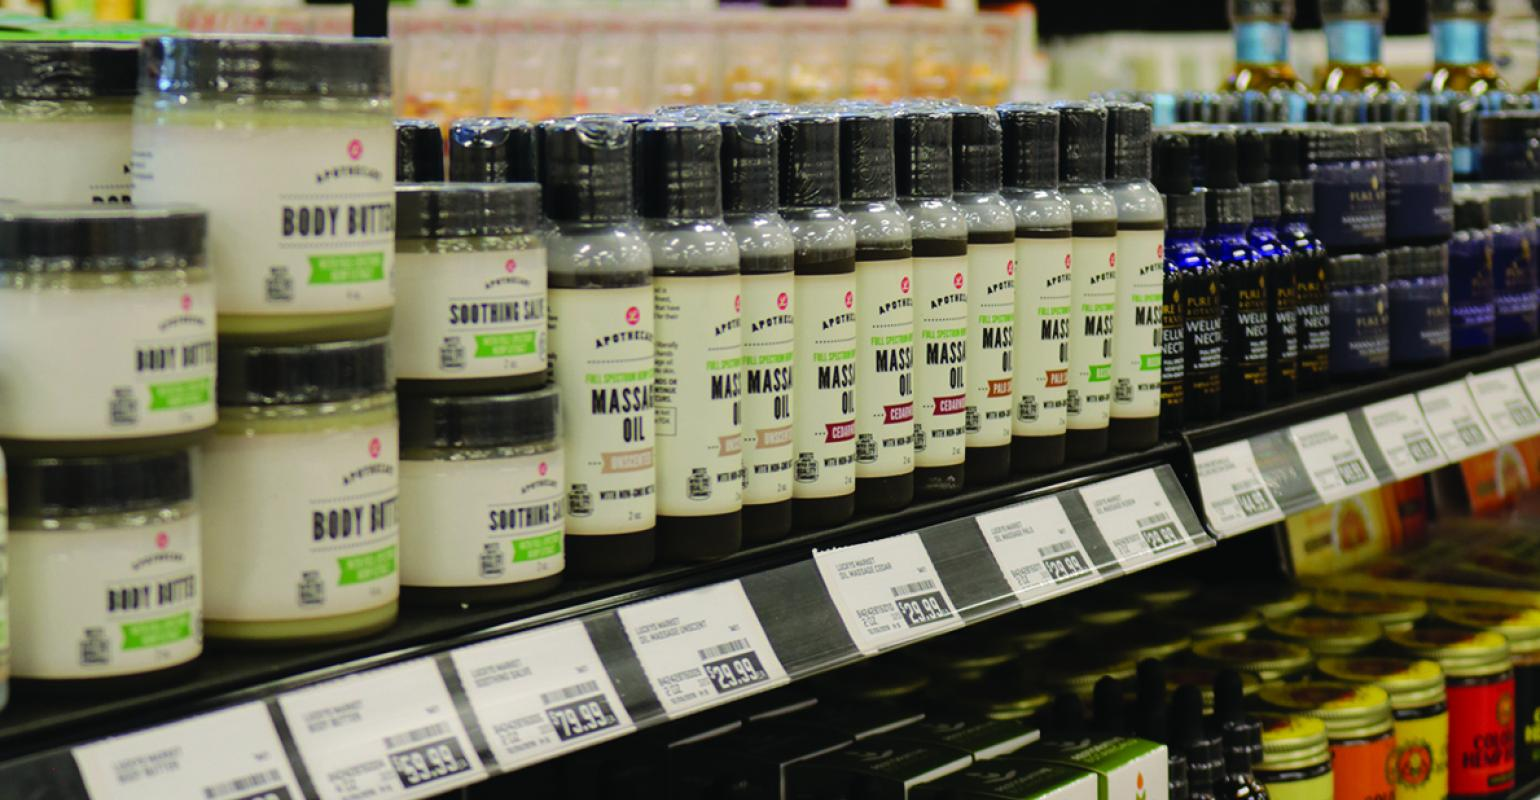 CBD sets expand at retail as category 'explodes' | Supermarket News